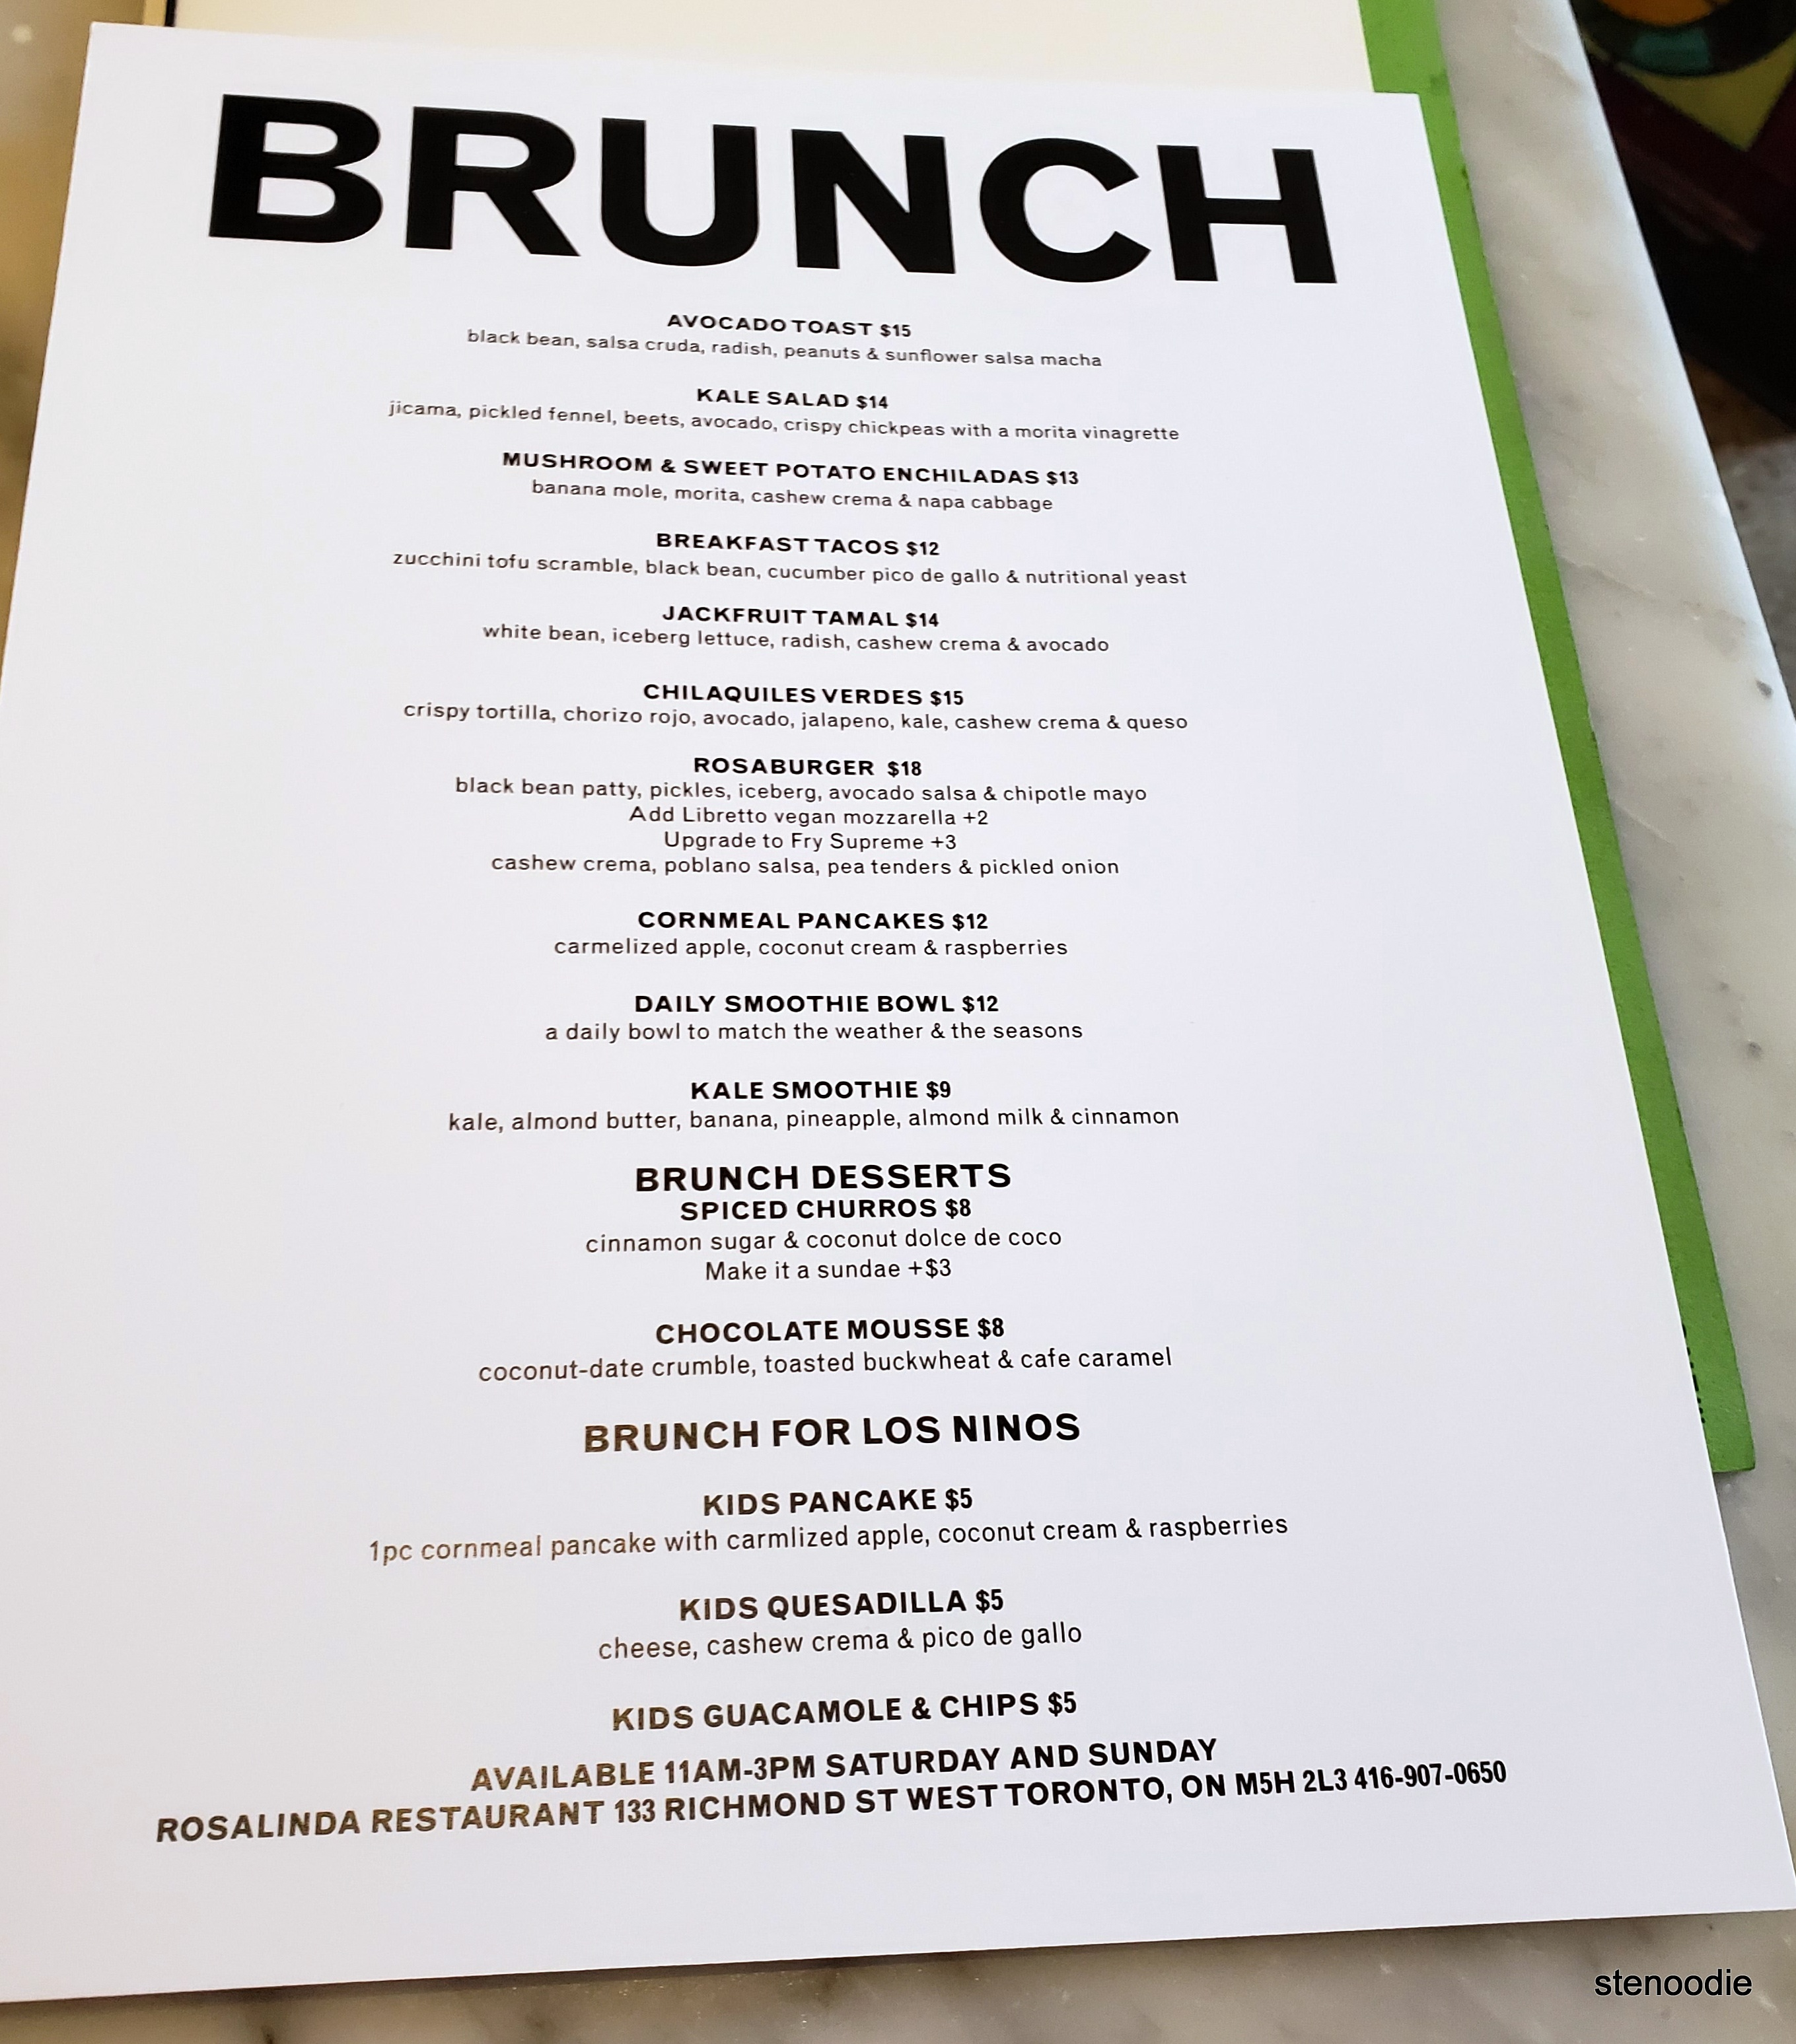 Rosalinda Restaurant brunch menu and prices